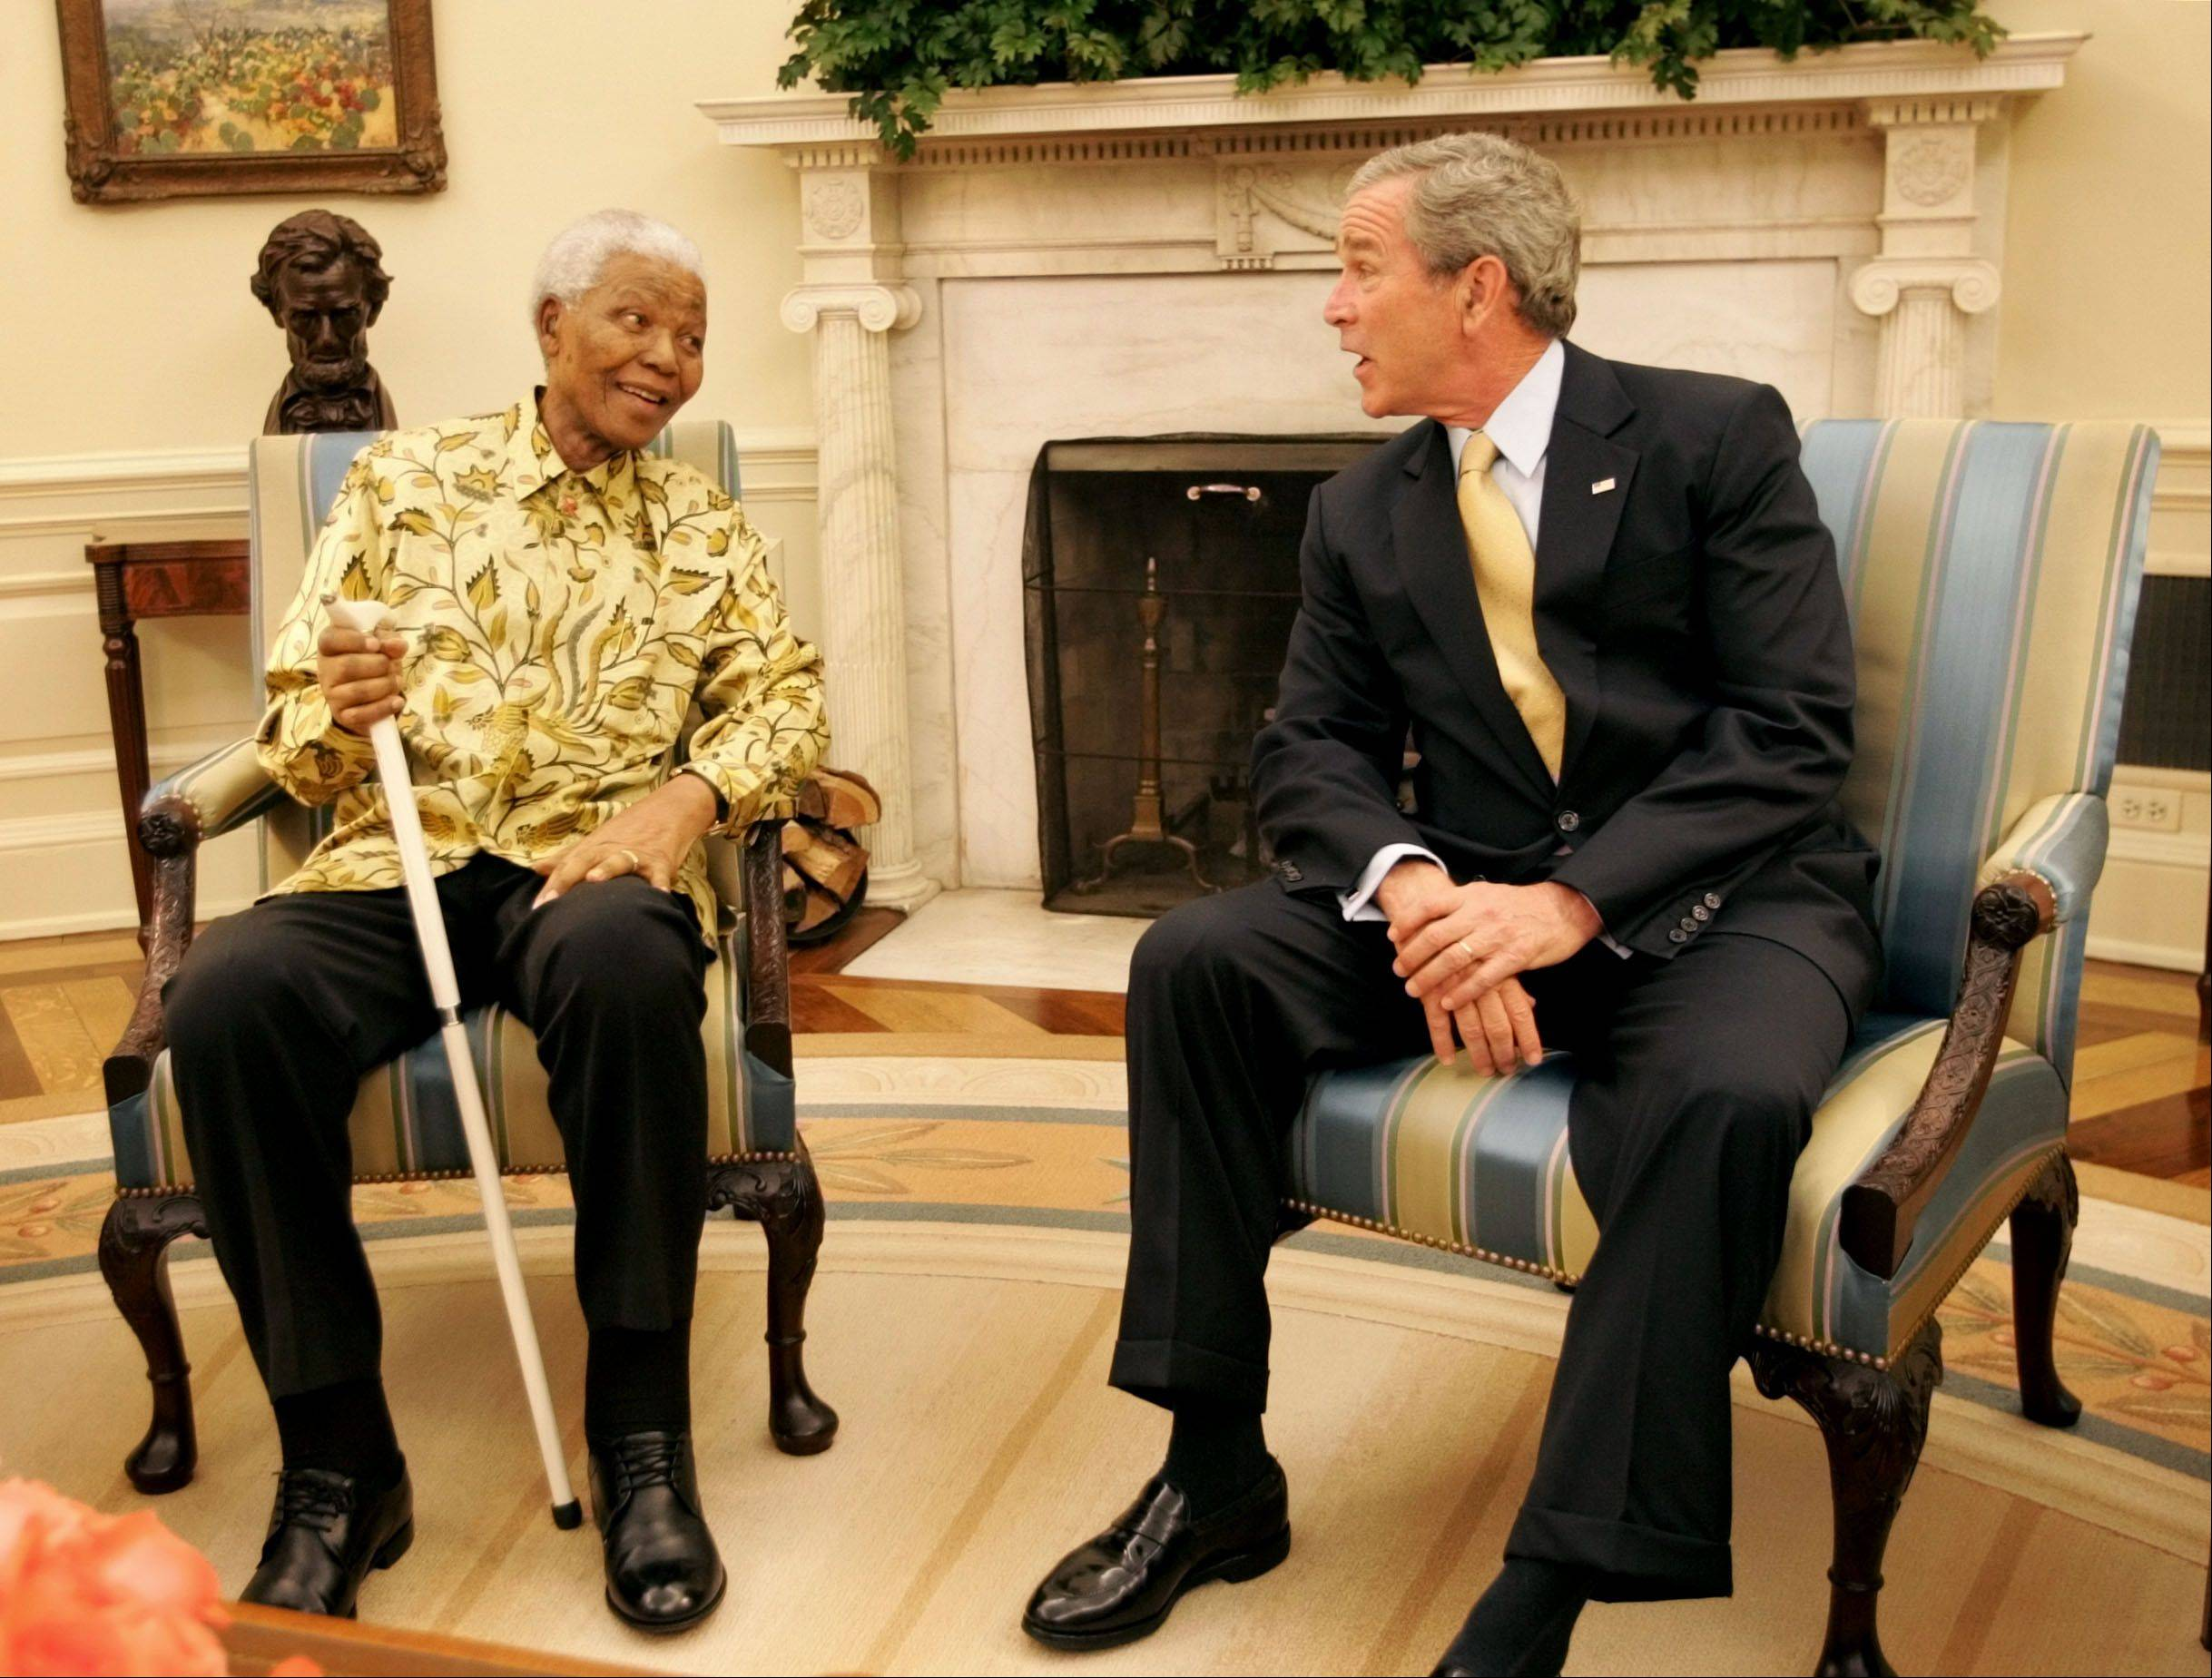 President Bush, right, meets with Former President of South Africa Nelson Mandela, left, in the Oval Office of the White House May 17, 2005, in Washington.